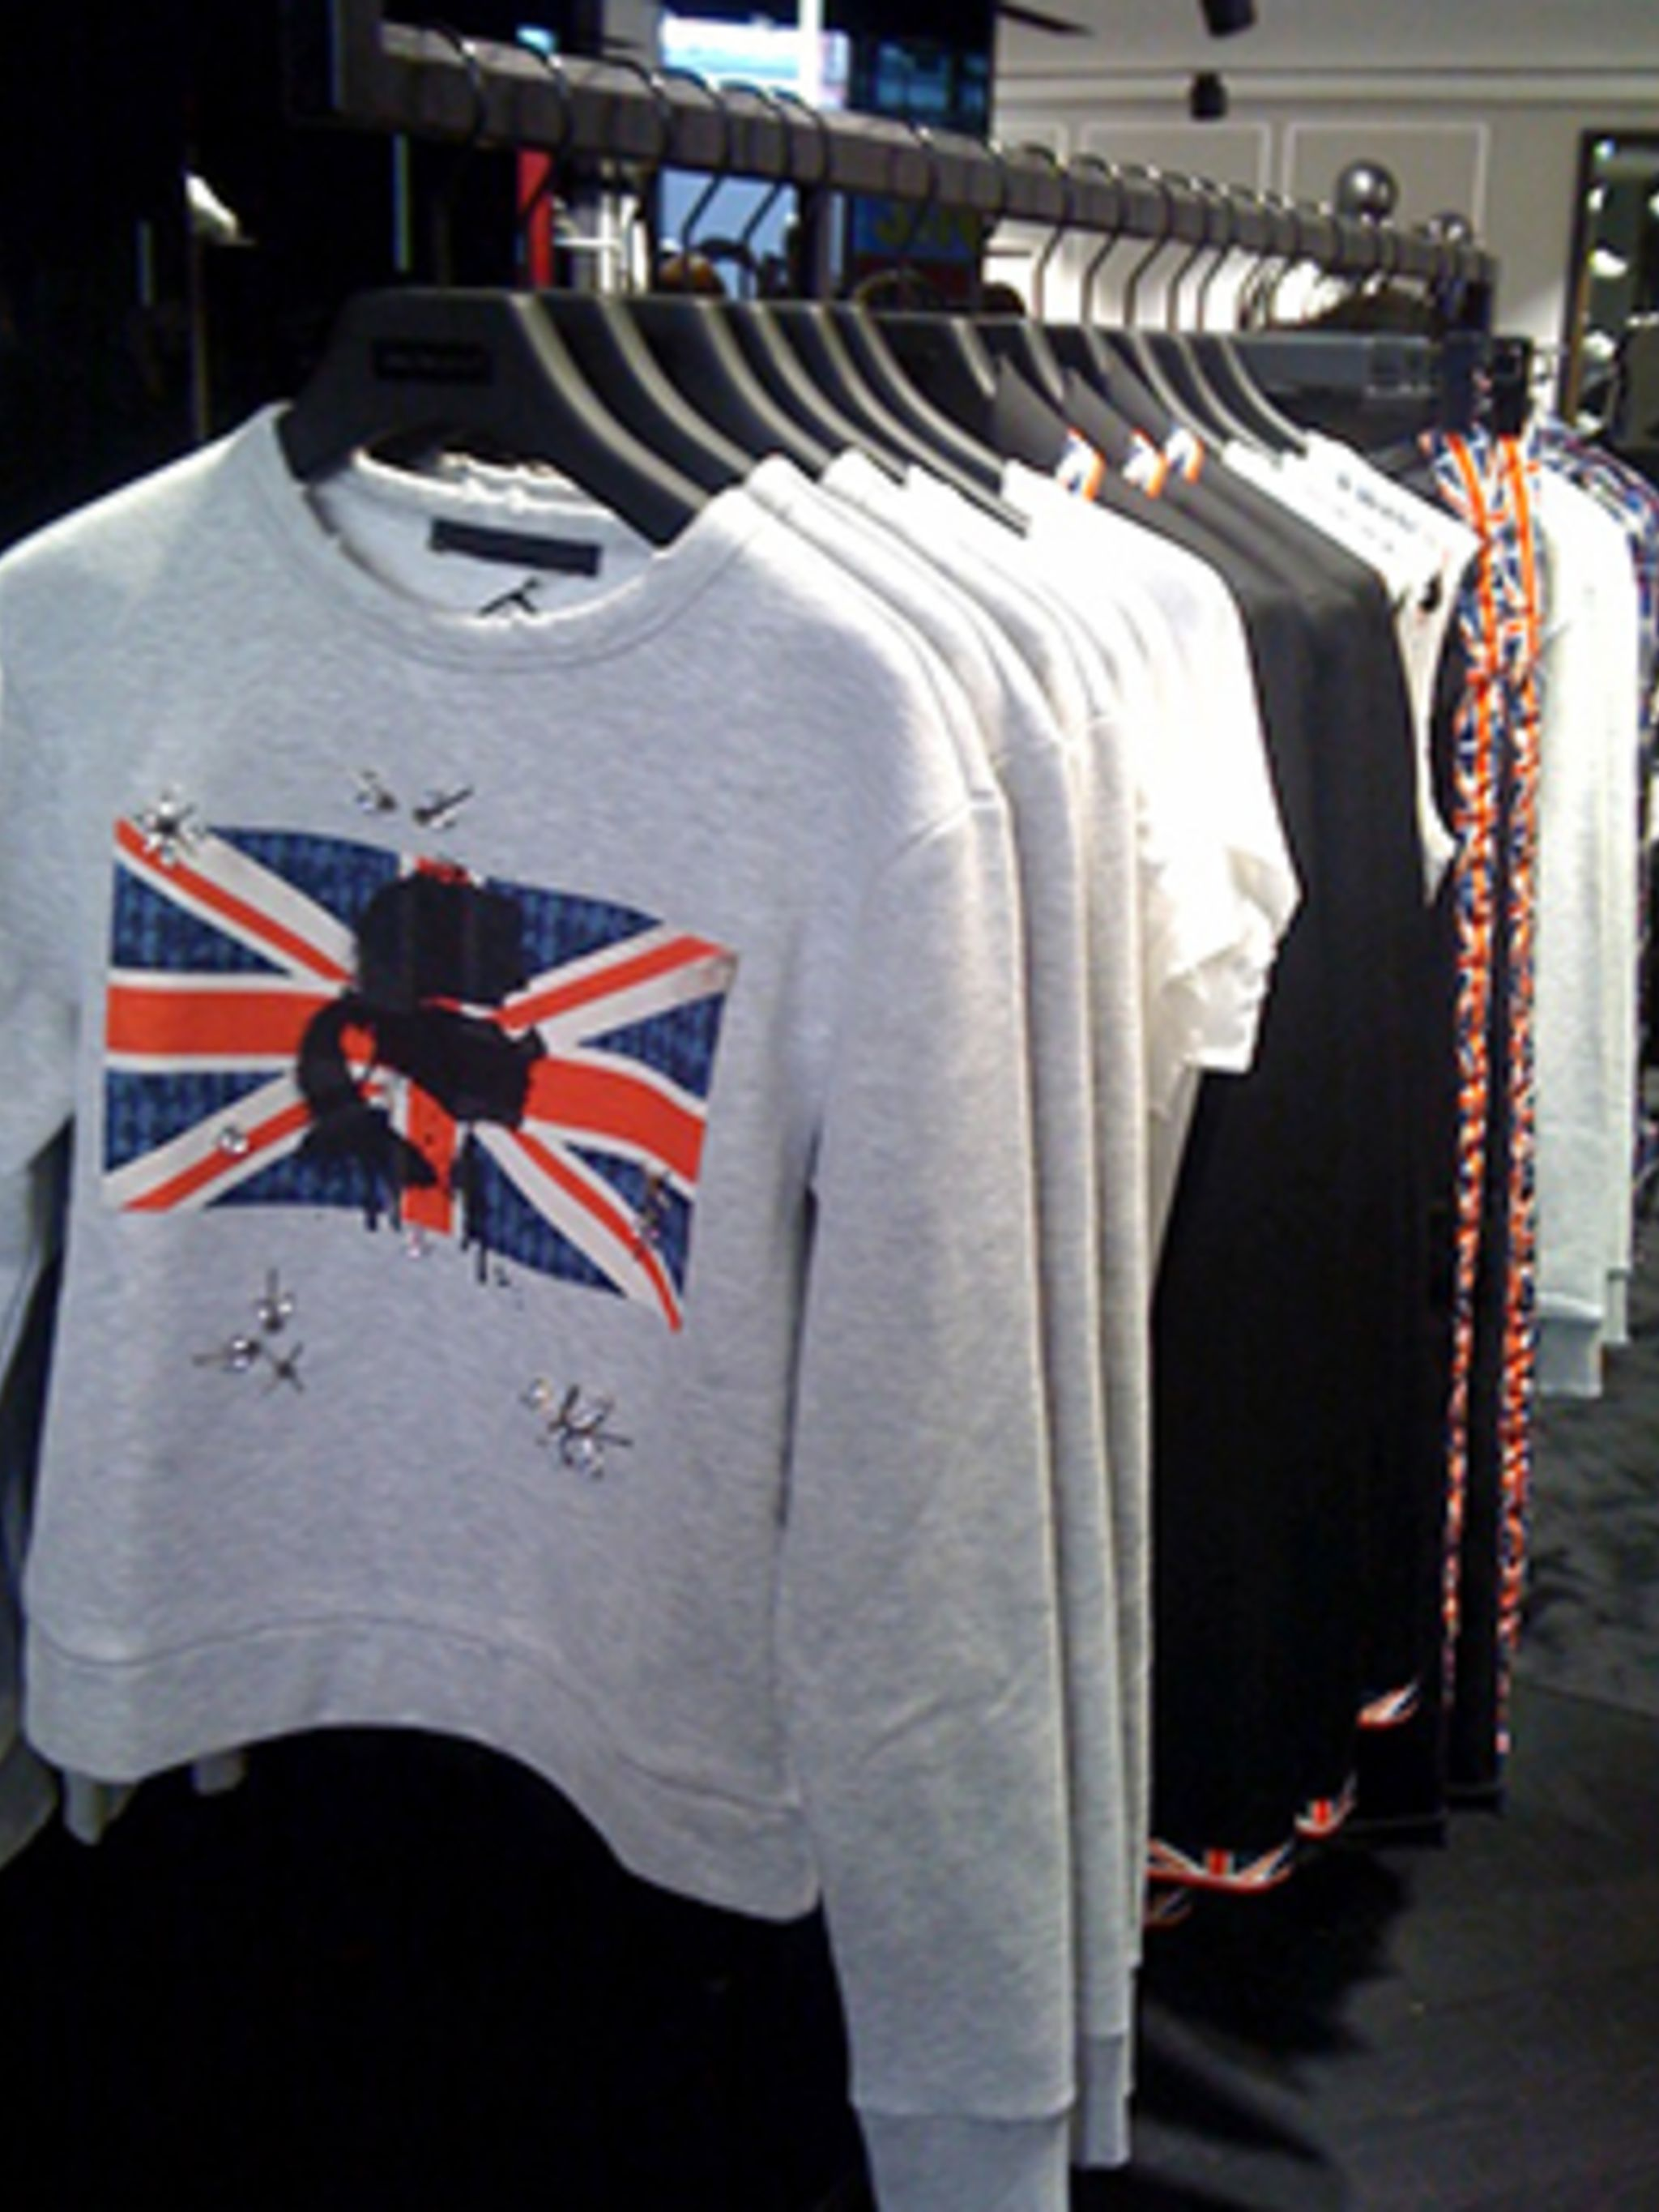 <p>The British capsule collection</p>